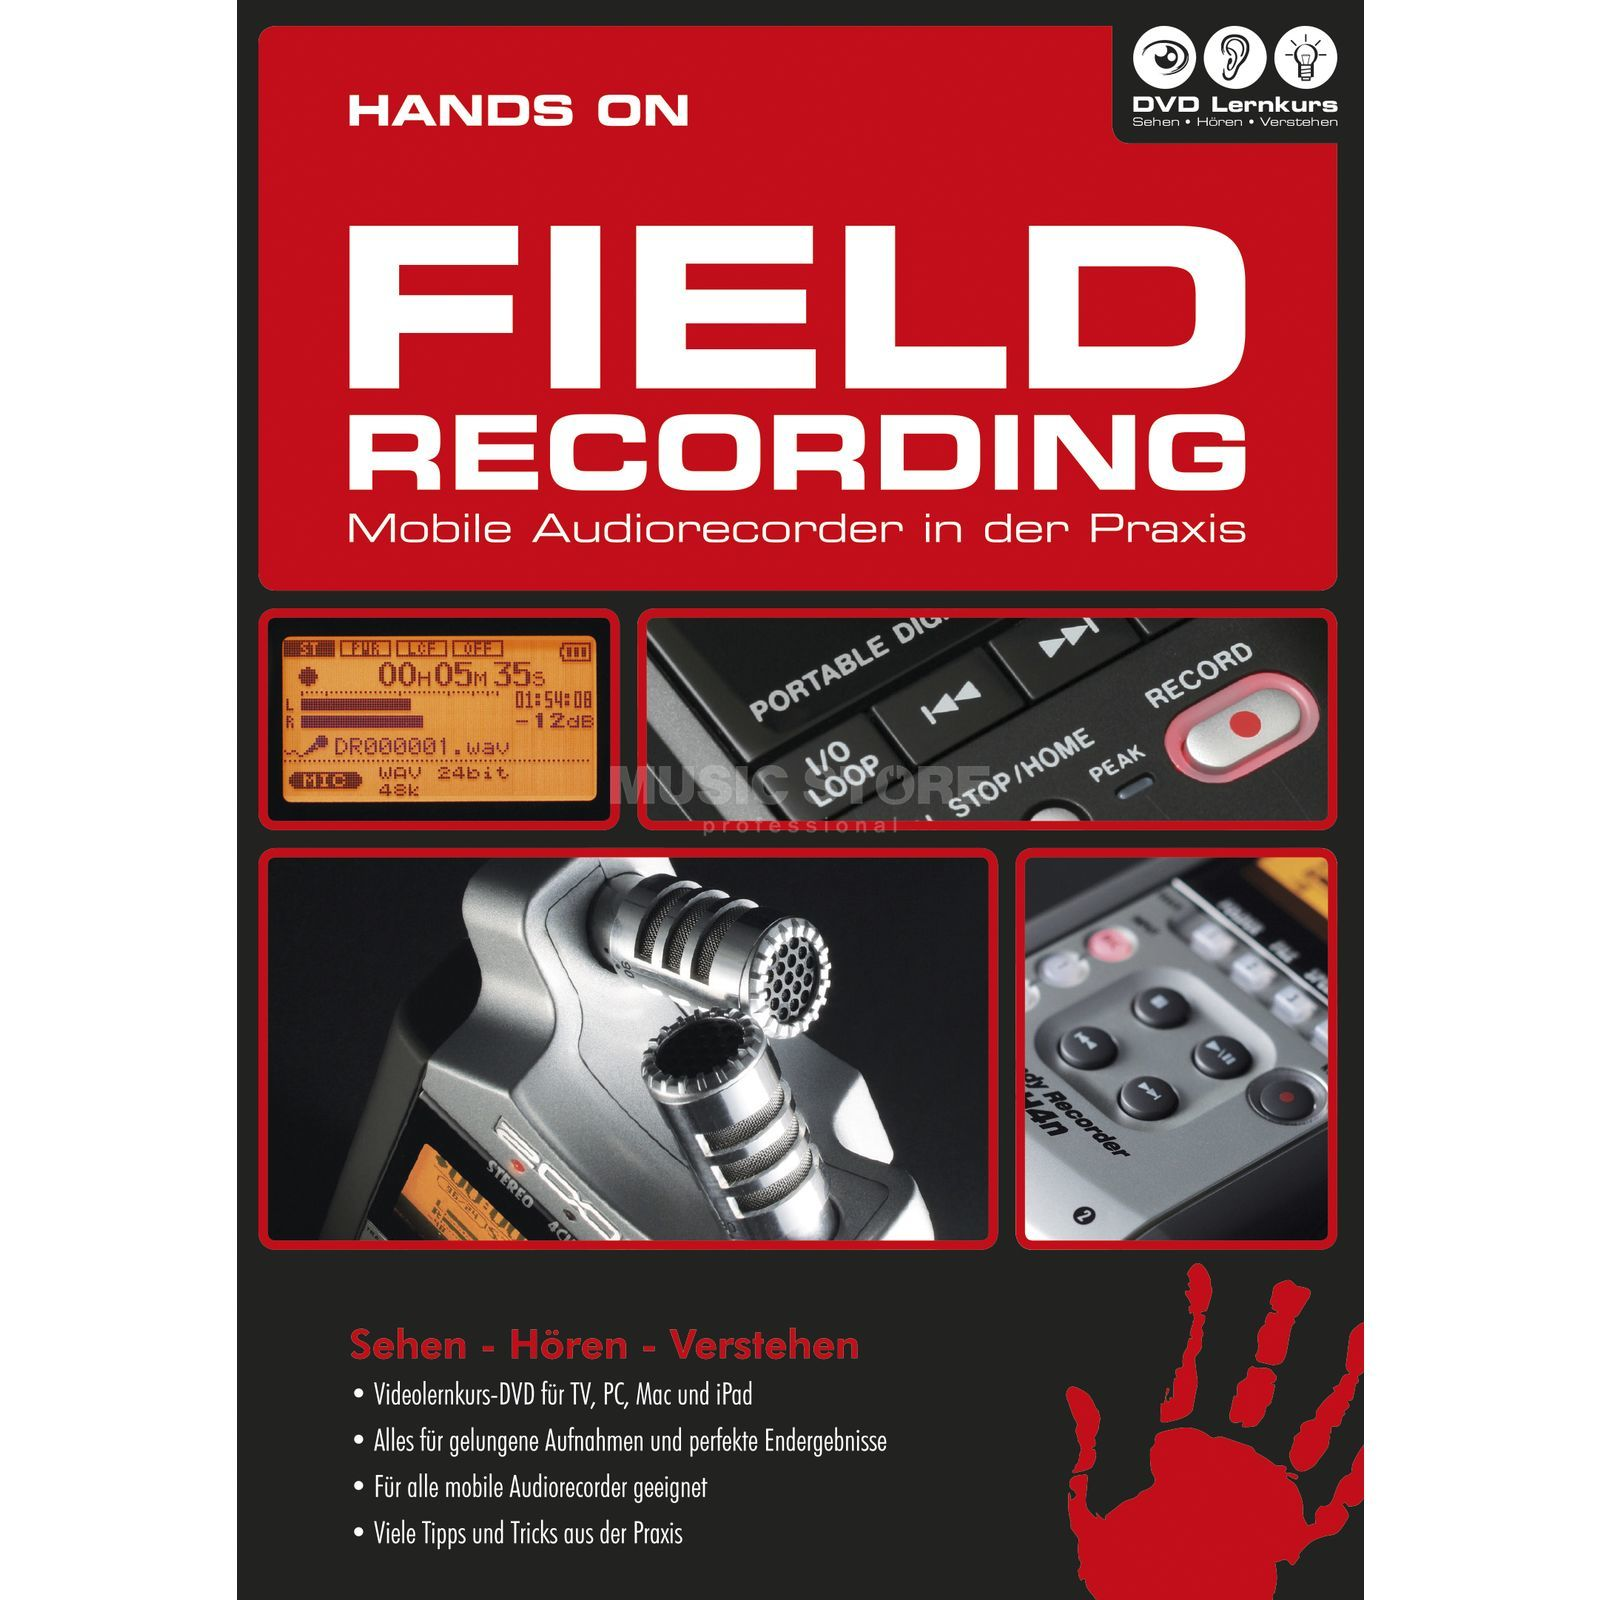 DVD Lernkurs Hands on Field Recording Mobile Recorder in der Praxis Produktbild